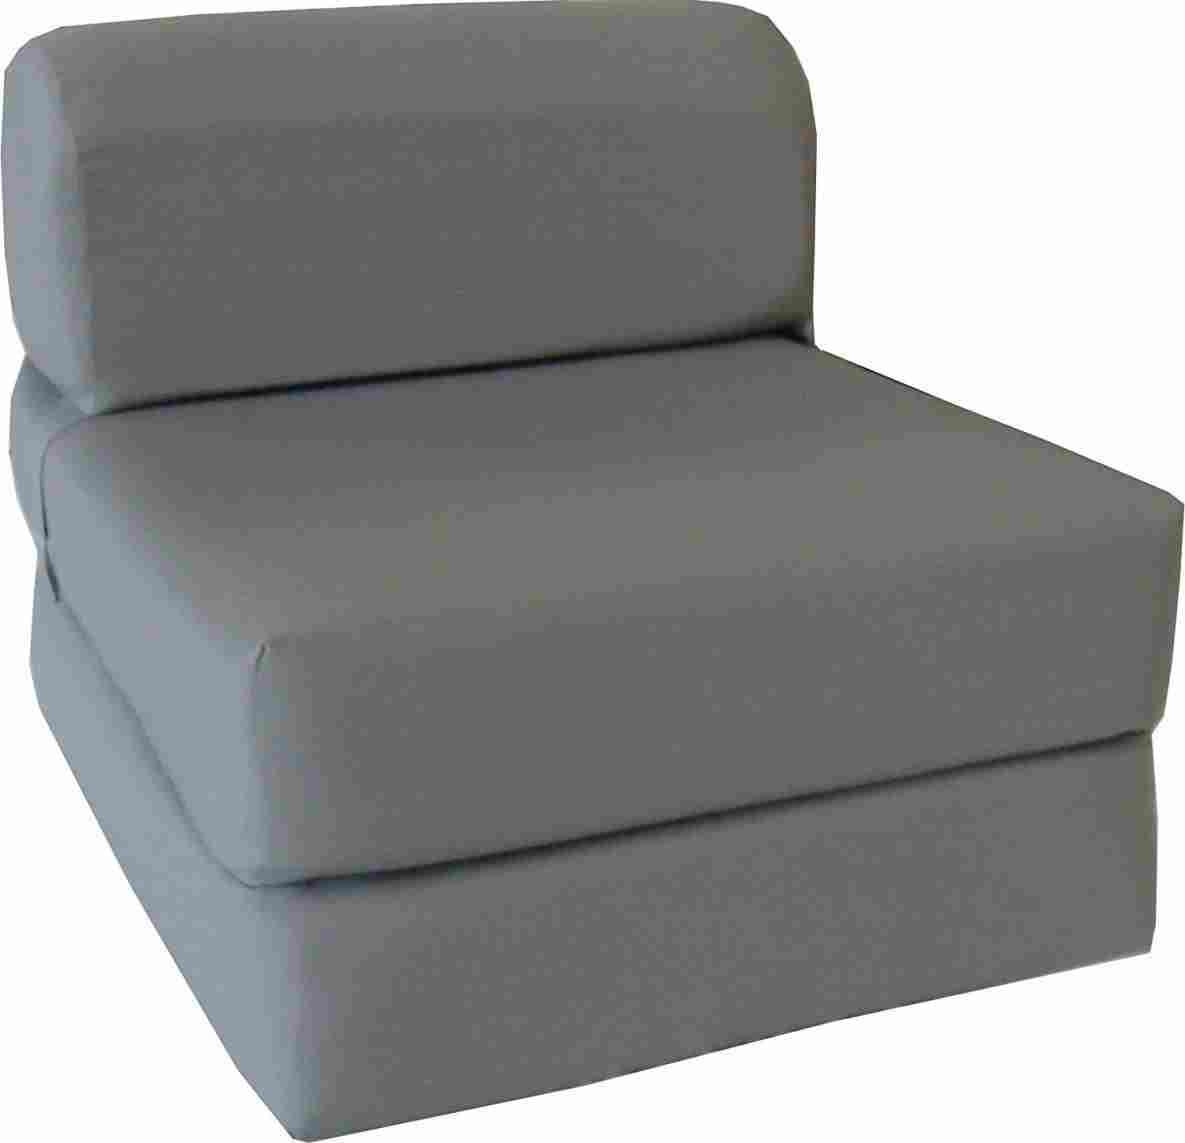 Fold Up Sofa Bed | Sofa And Chair Information Intended For Fold Up Sofa Chairs (Image 11 of 22)